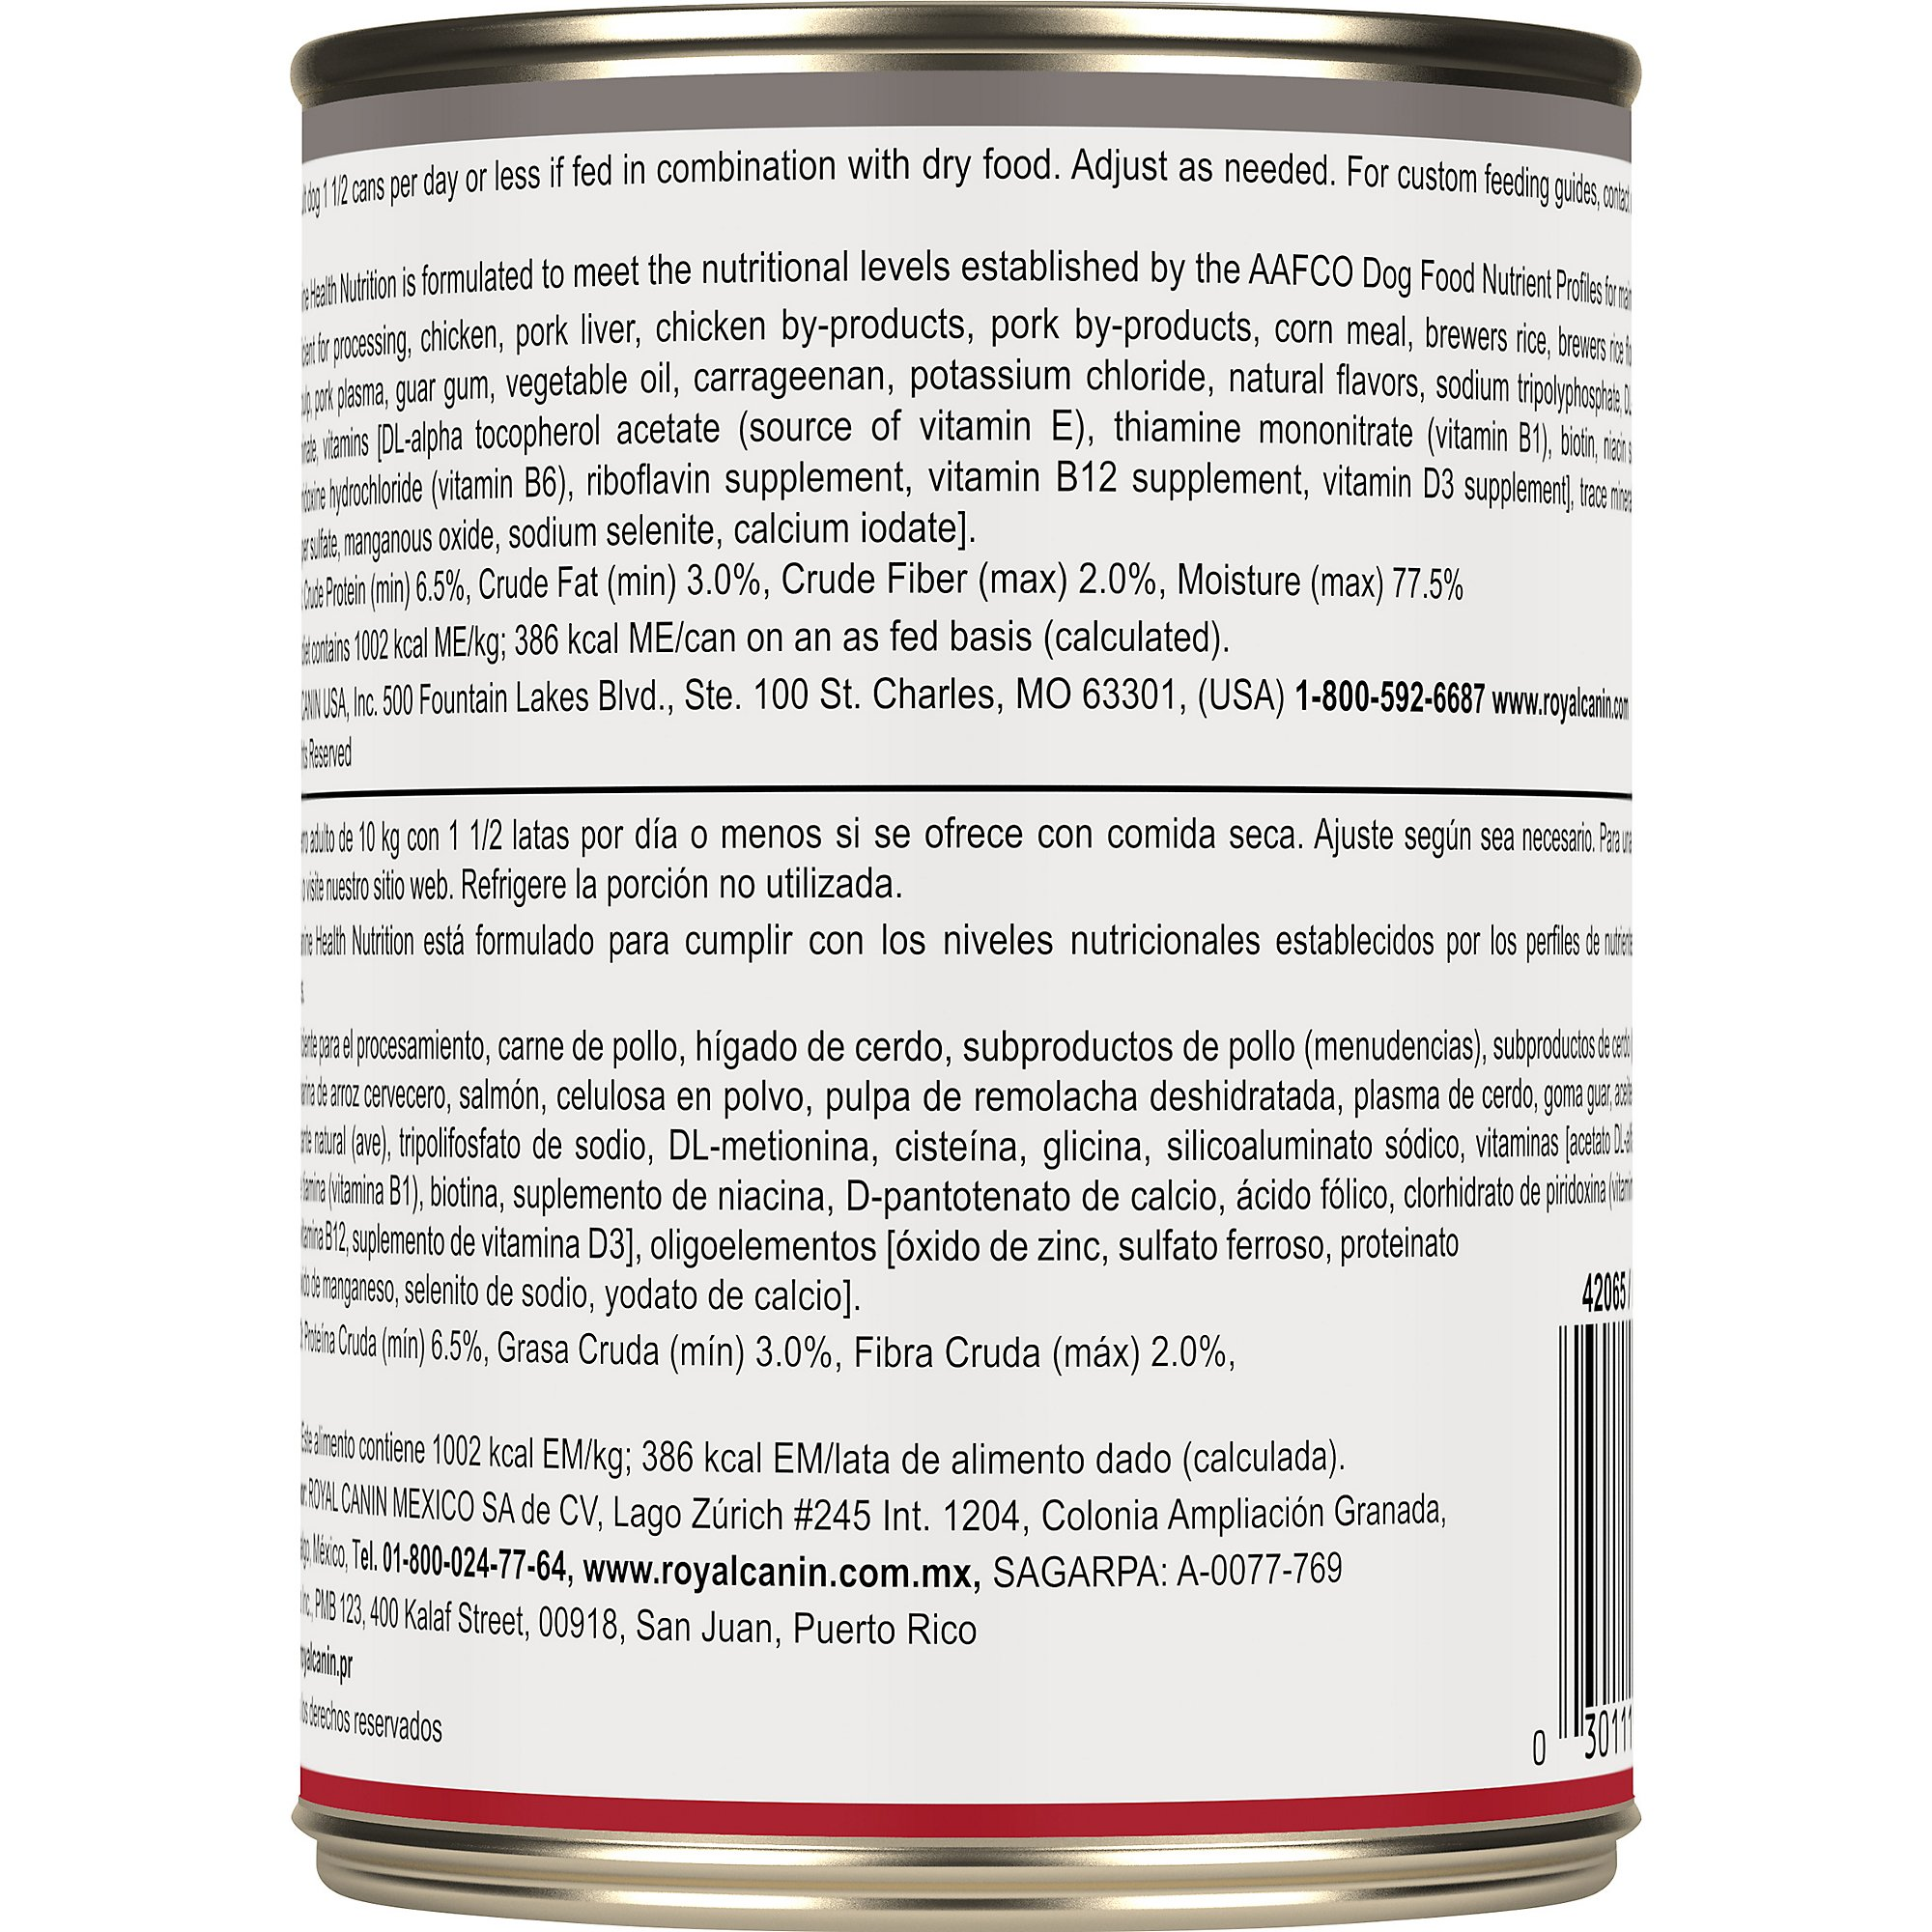 Royal Canin Canine Health Nutrition Adult In Gel Canned Dog Food (Case of 12/1), 13.5 oz by Royal Canin (Image #3)